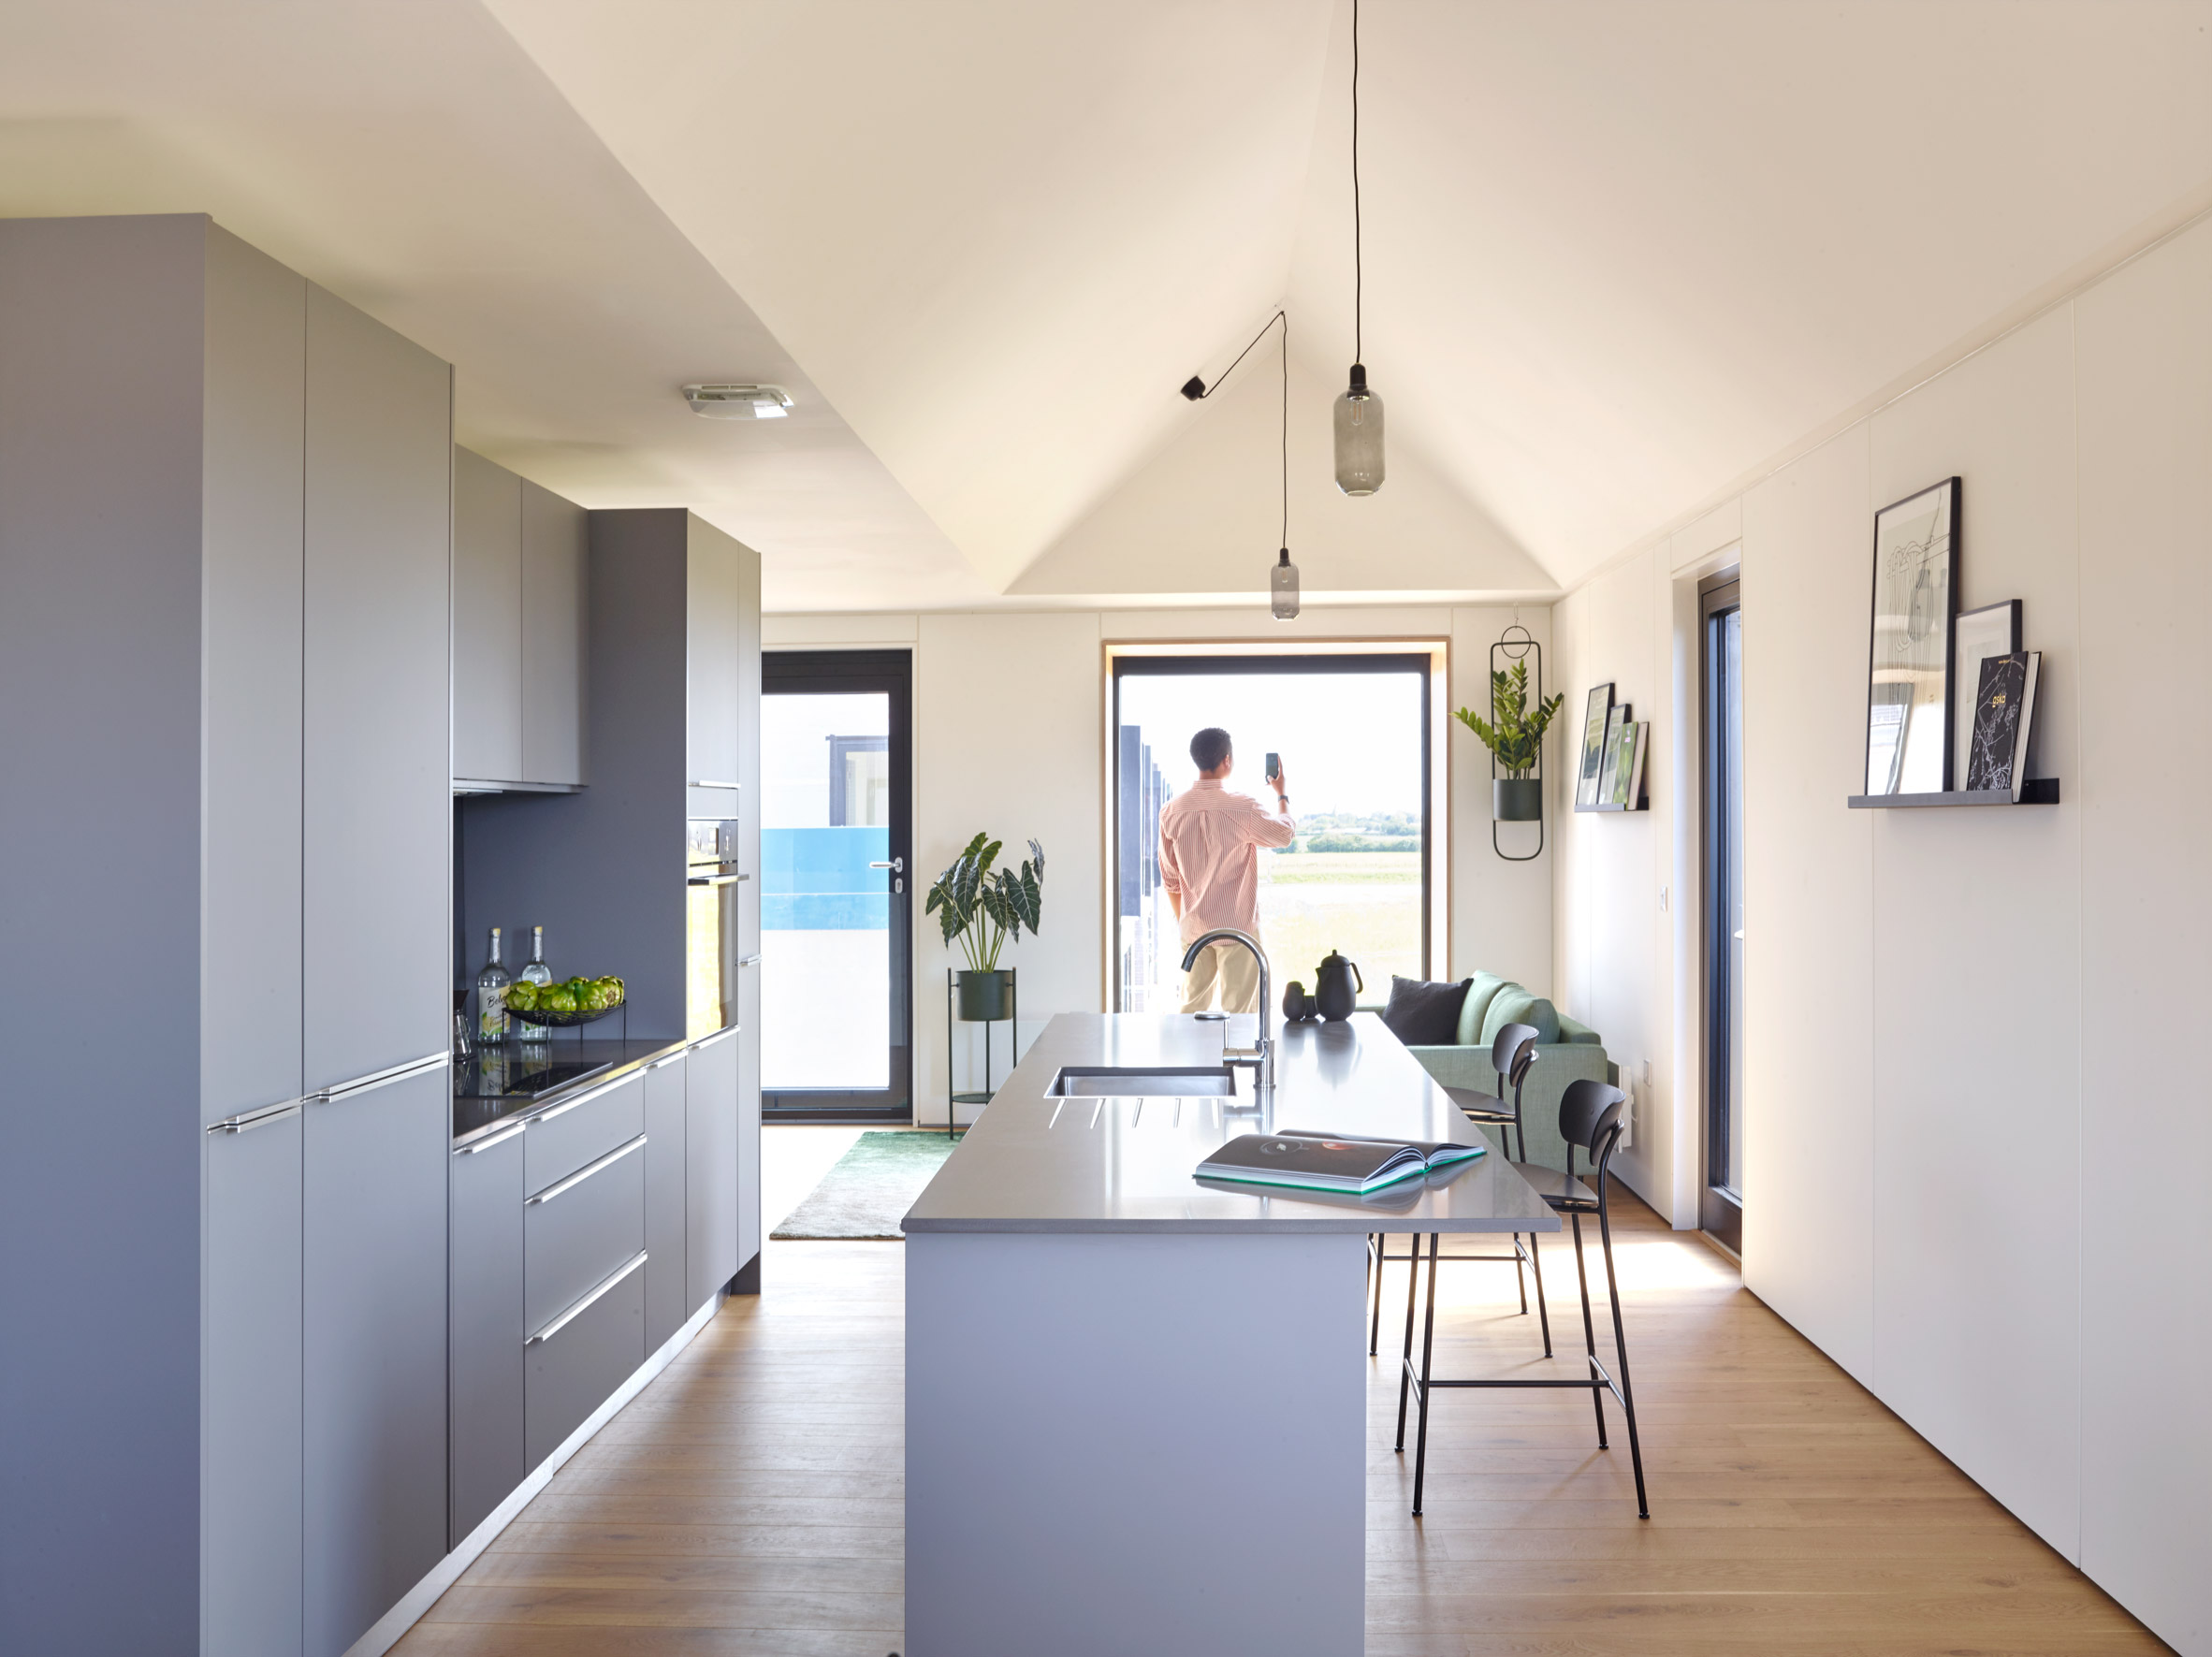 Town House show home kitchen at Inholm by House by Urban Splash